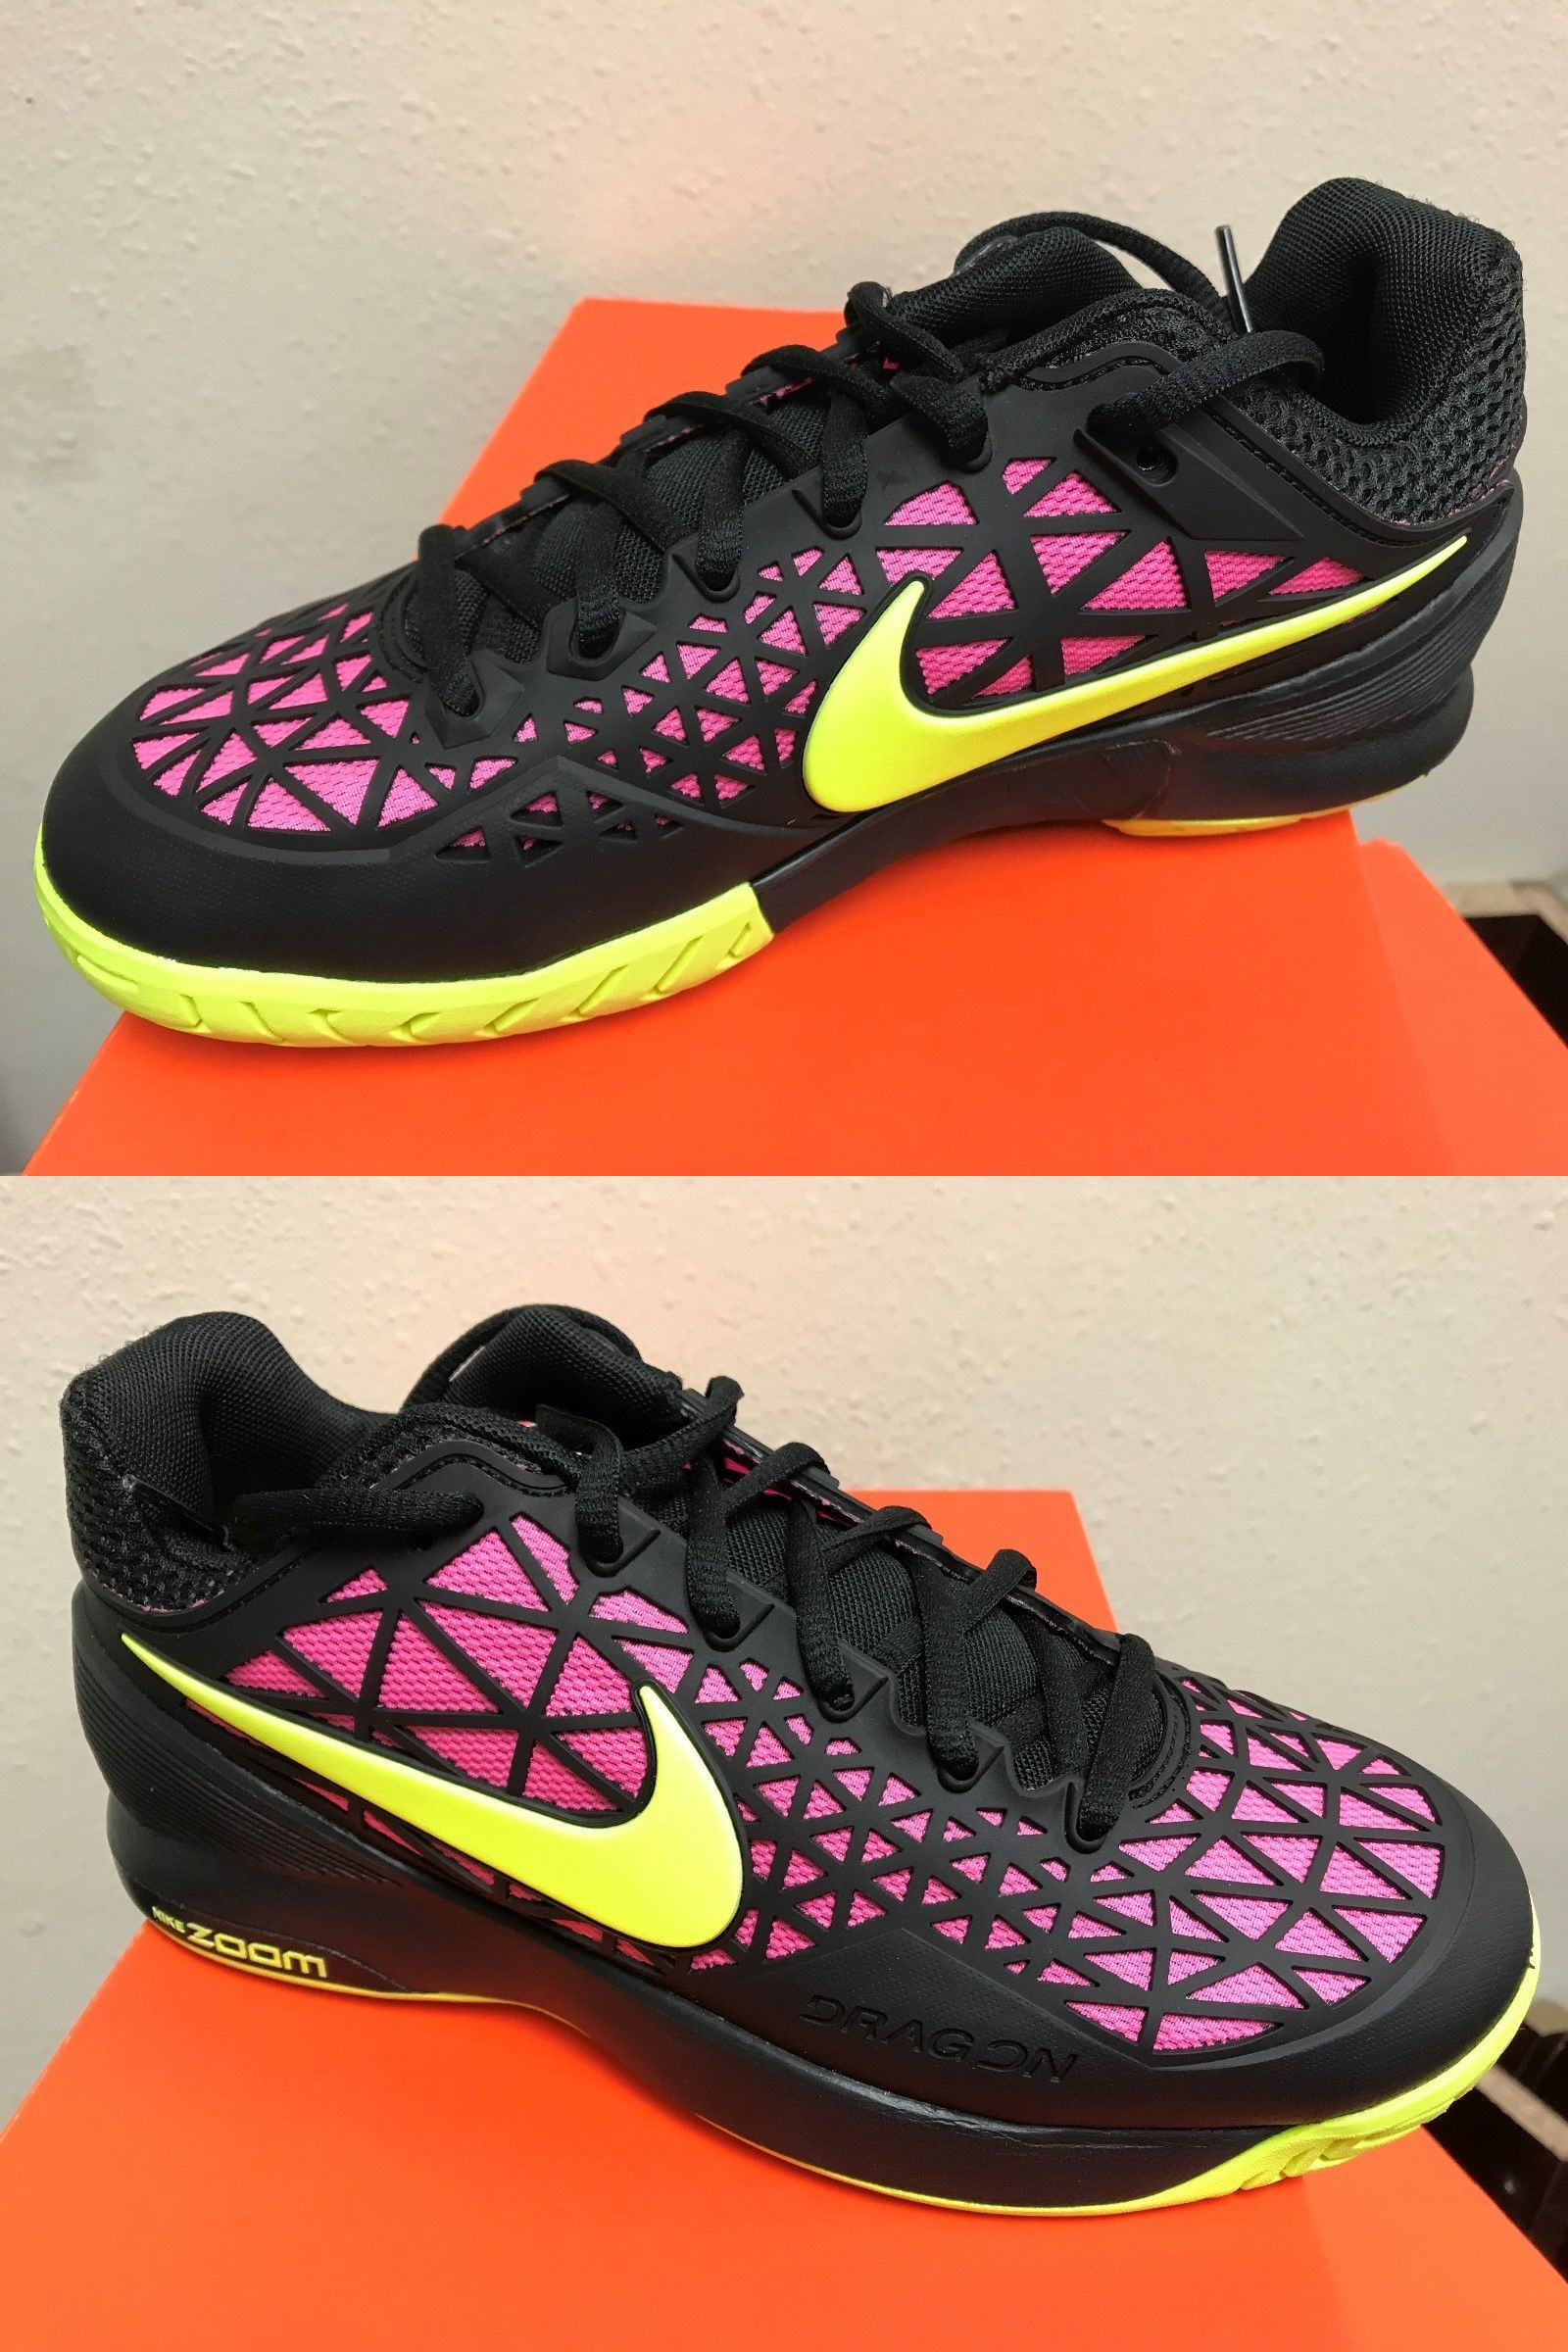 quality design 61425 64759 Shoes 62230  Nike Women S Zoom Cage 2 Tennis Shoe Style  705260 076 -